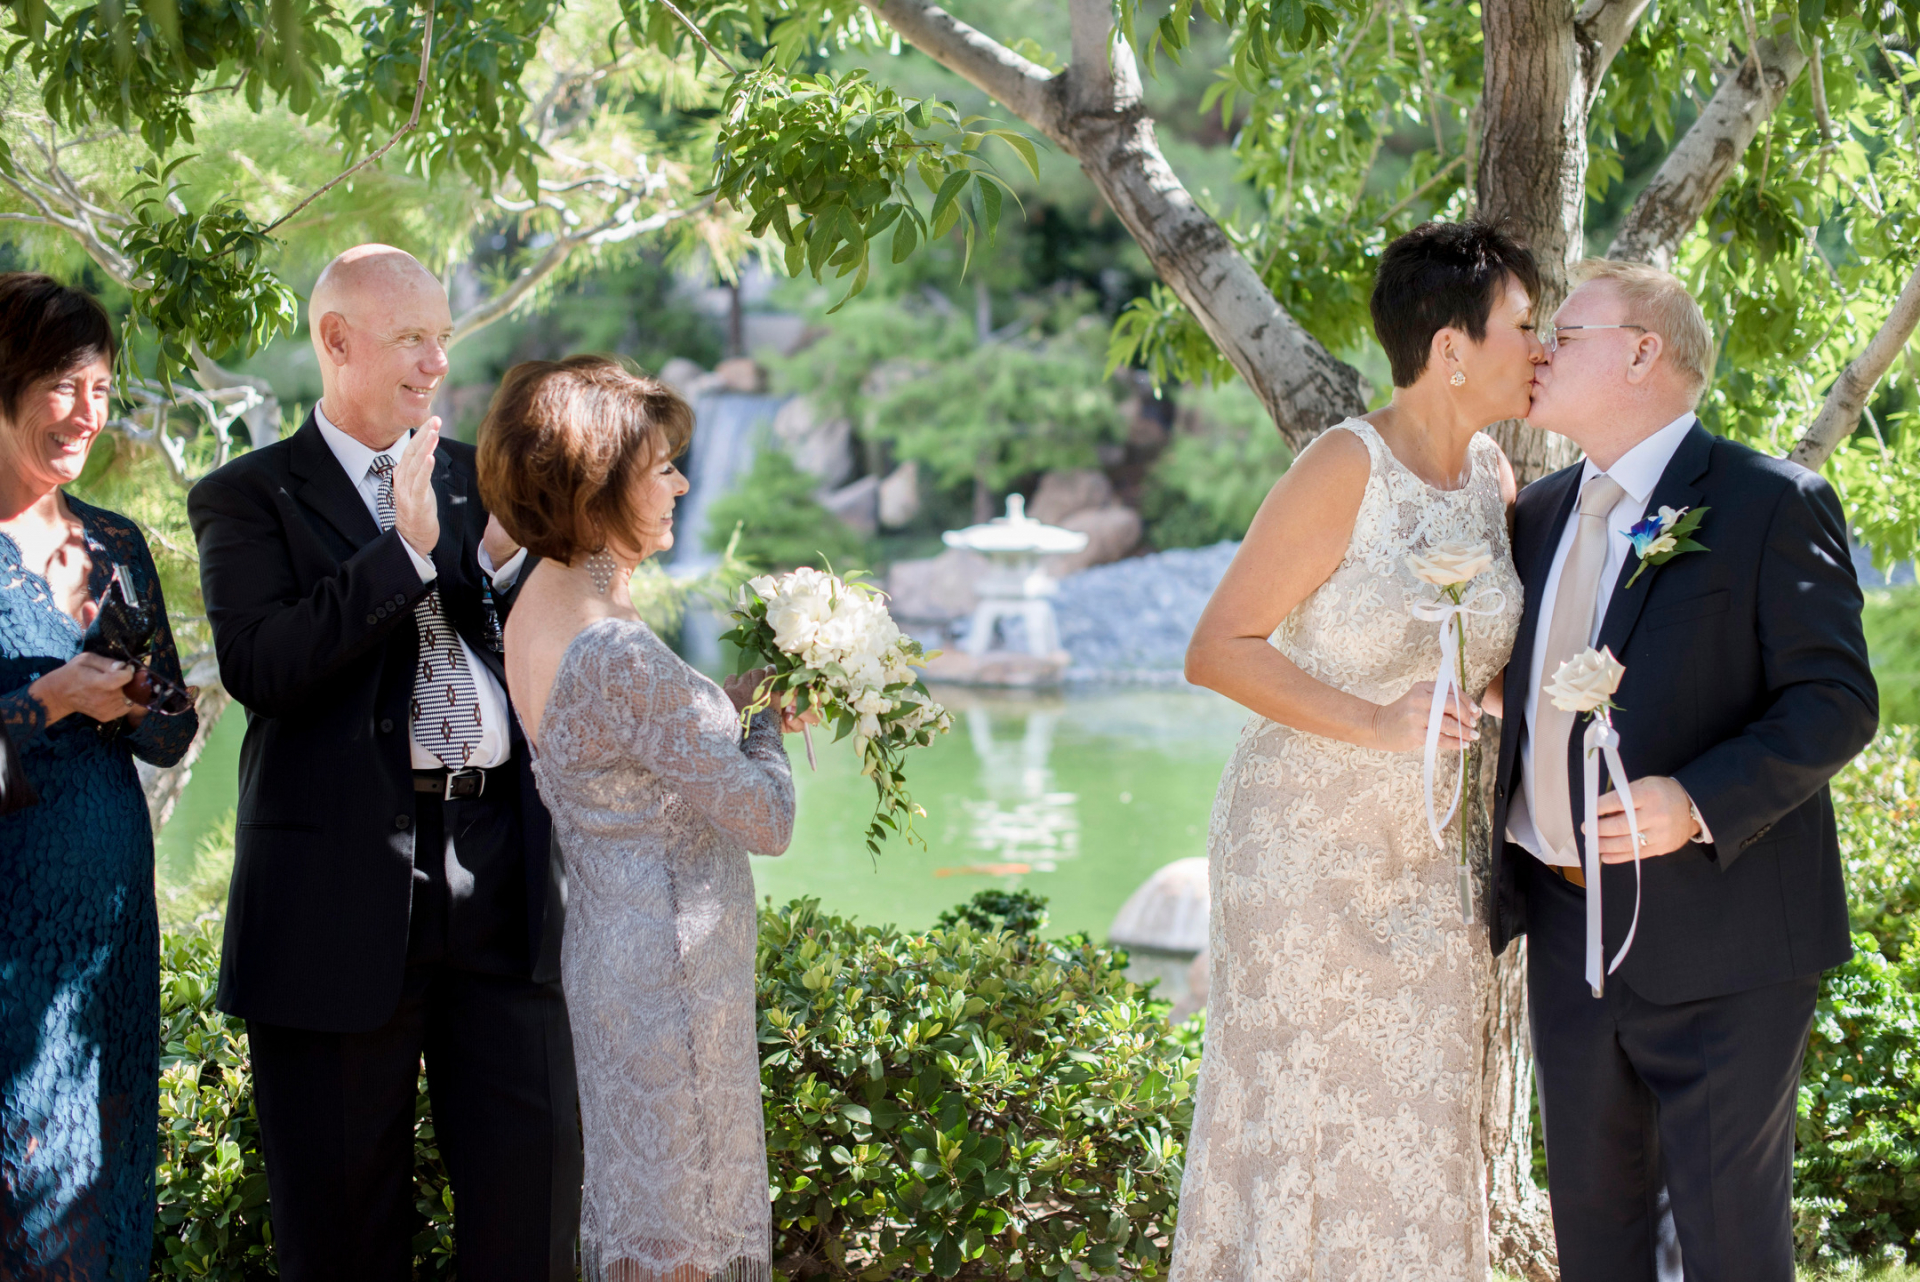 Japanese Friendship Garden Elopements - AZ Photographer | The small number of guests smile and applaud as the bride and groom finally share a kiss at the end of the ceremony